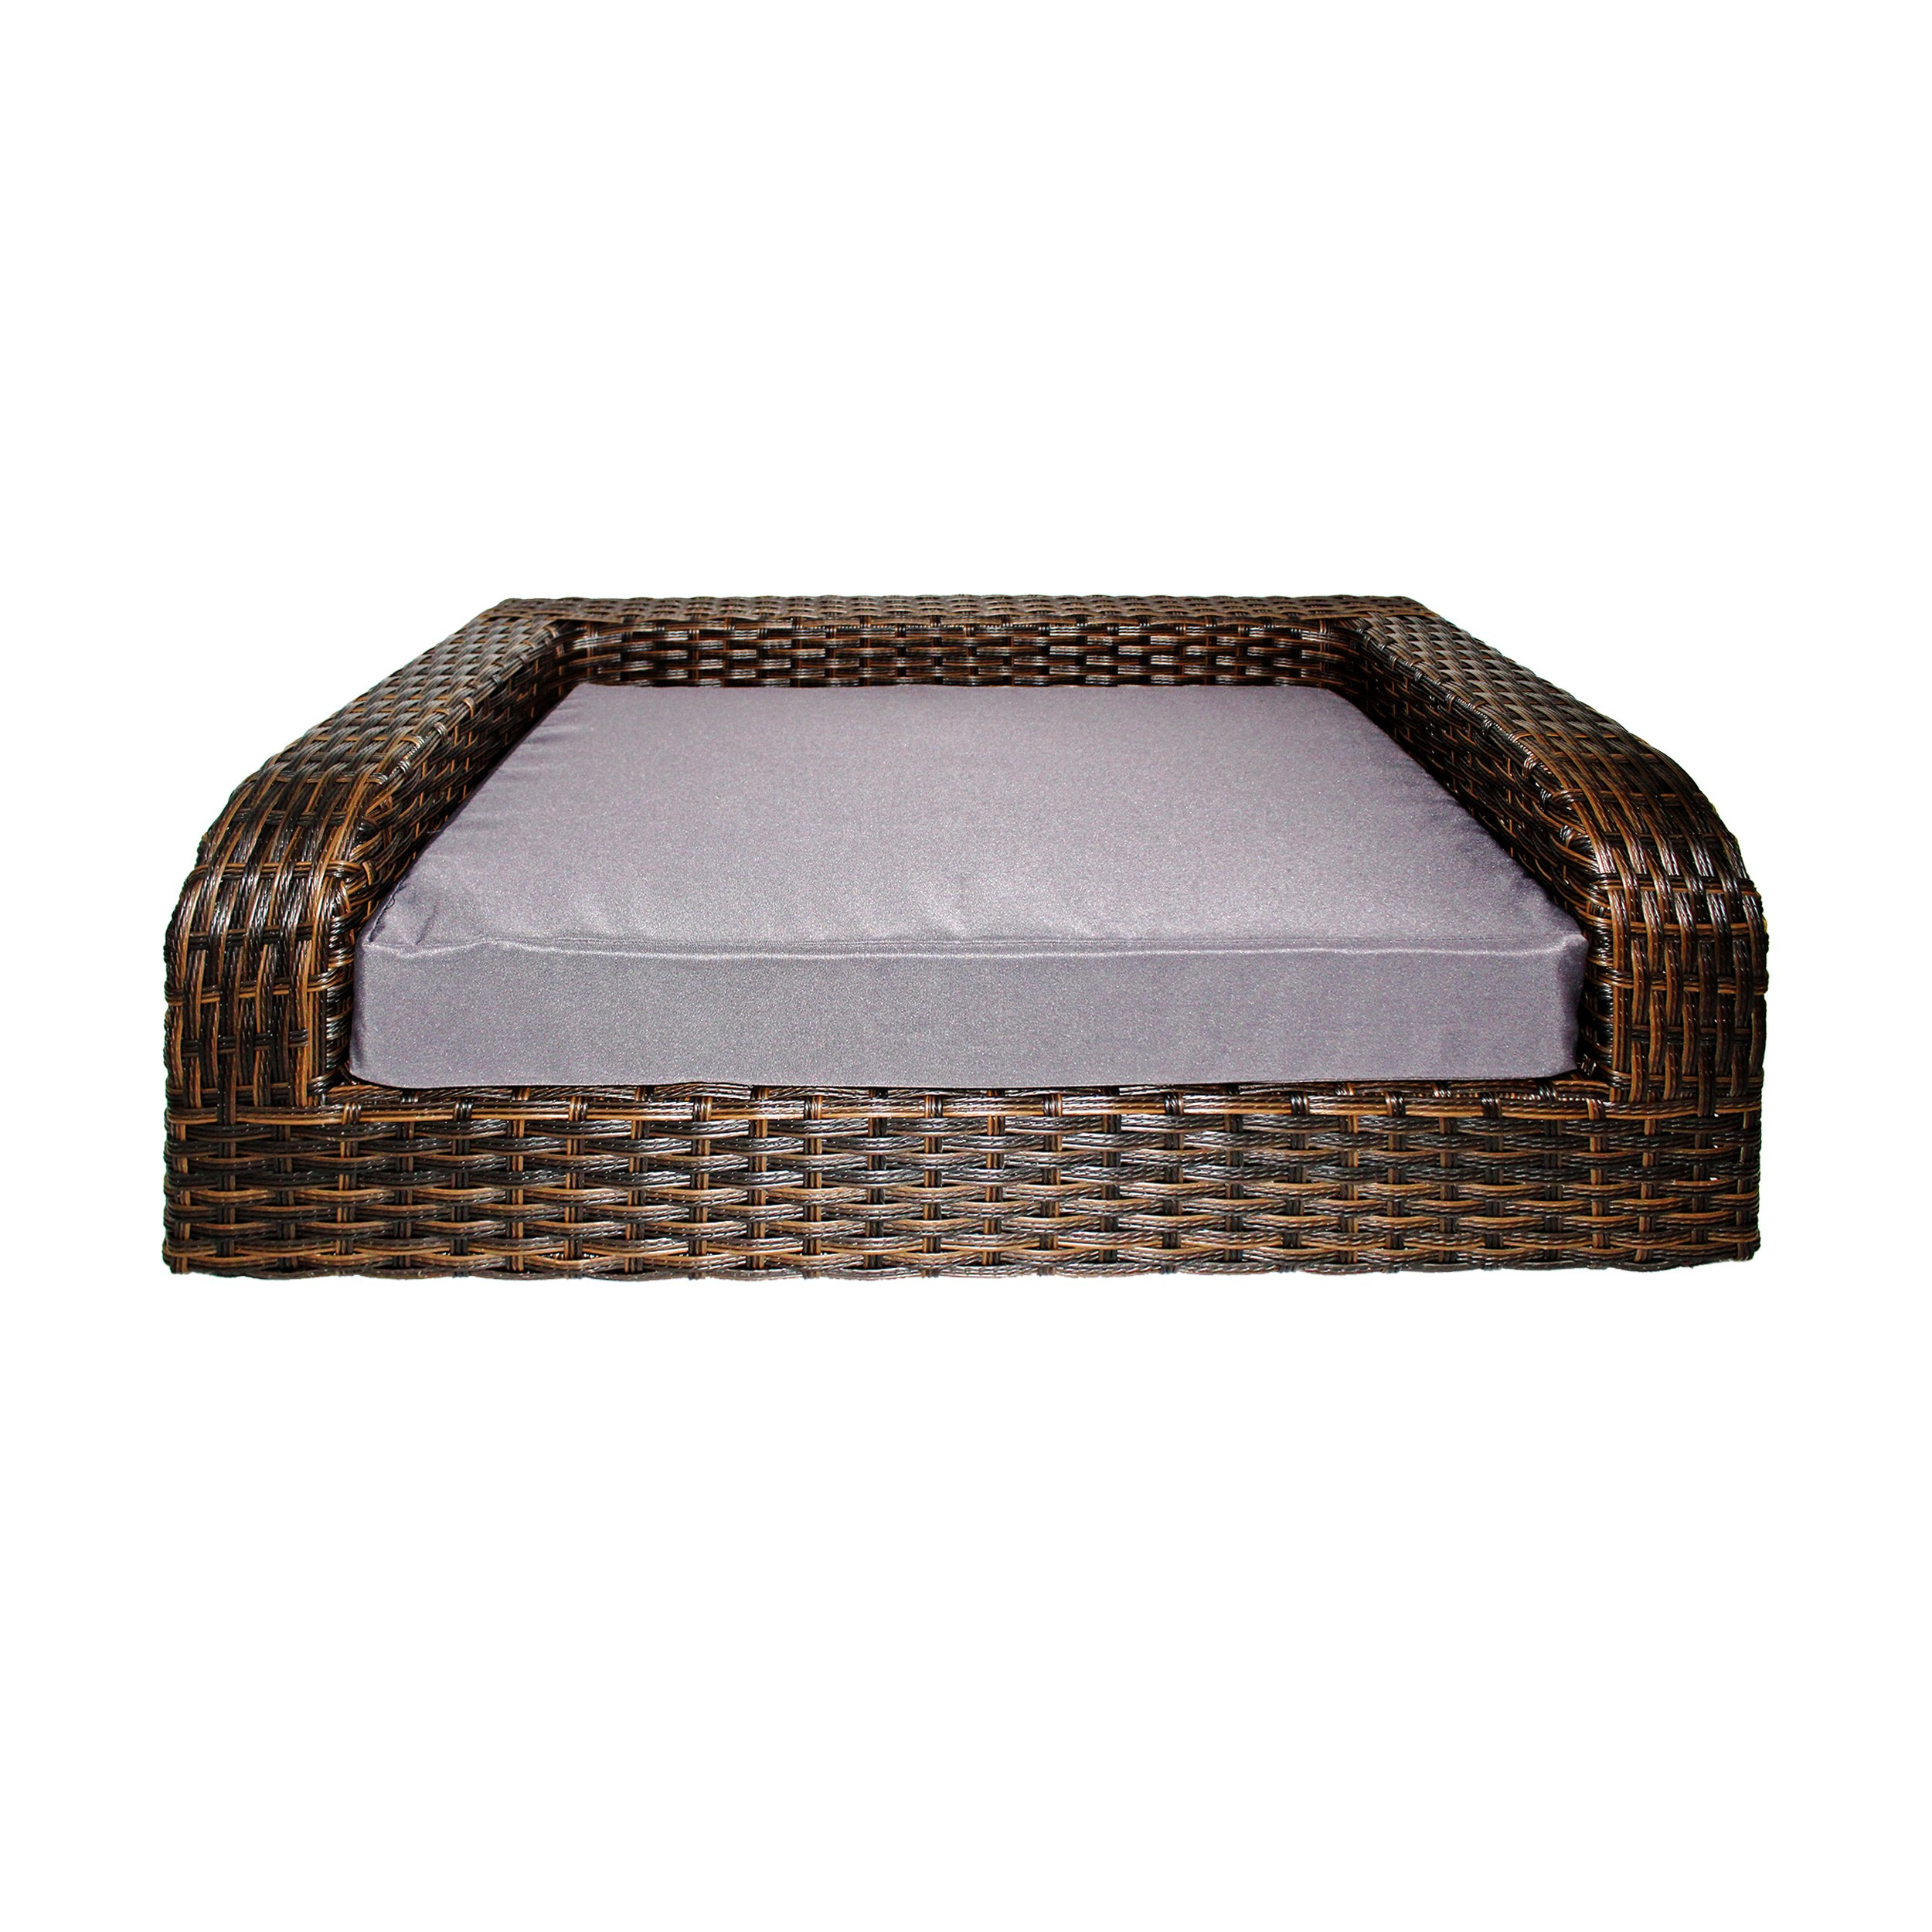 Iconic Pet Rattan/Wicker Pet Sofa Bed - Sofa Made of Woven Palm Stems of Rattan with Metal Frame, Indoor/Outdoor Sofa and Water Resistant Cushion Cover, Elegant Pet Bed for Dogs/Cats up to 50 lbs by Iconic Pet